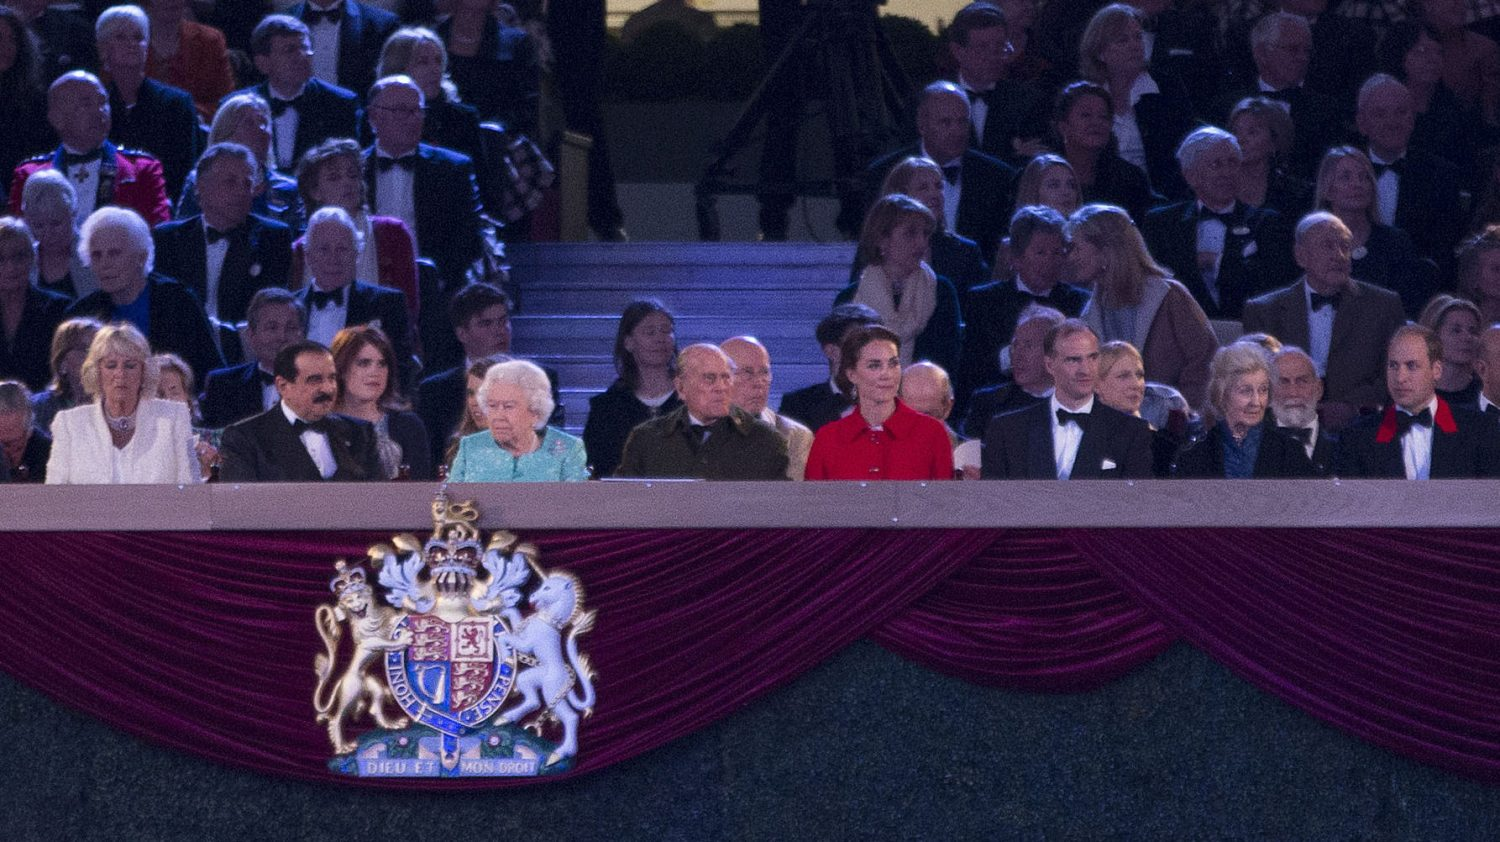 The Queen's 92nd birthday is to be celebrated with a concert at the Royal Albert Hall; she will be joined by other Royals. Picture by Stephen Lock / i-Images